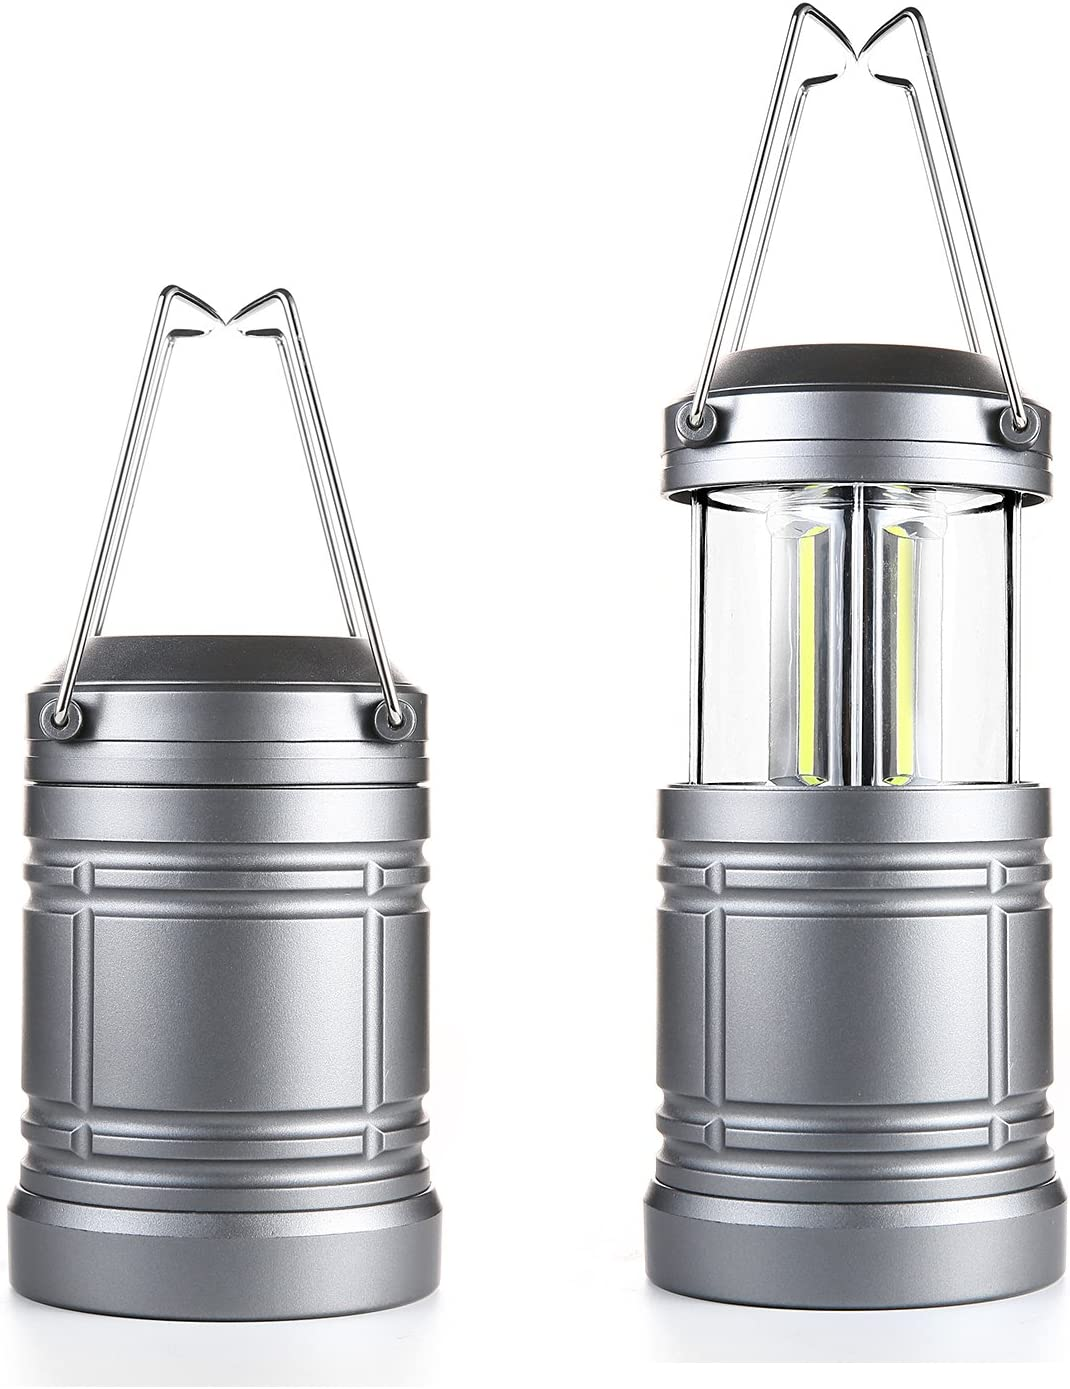 2 Pack Camping Lantern with Magnetic Base – 500 Lumens Collapsible Ultra Bright Portable LED Lantern for Emergency, Hurricane, Storms, Outage